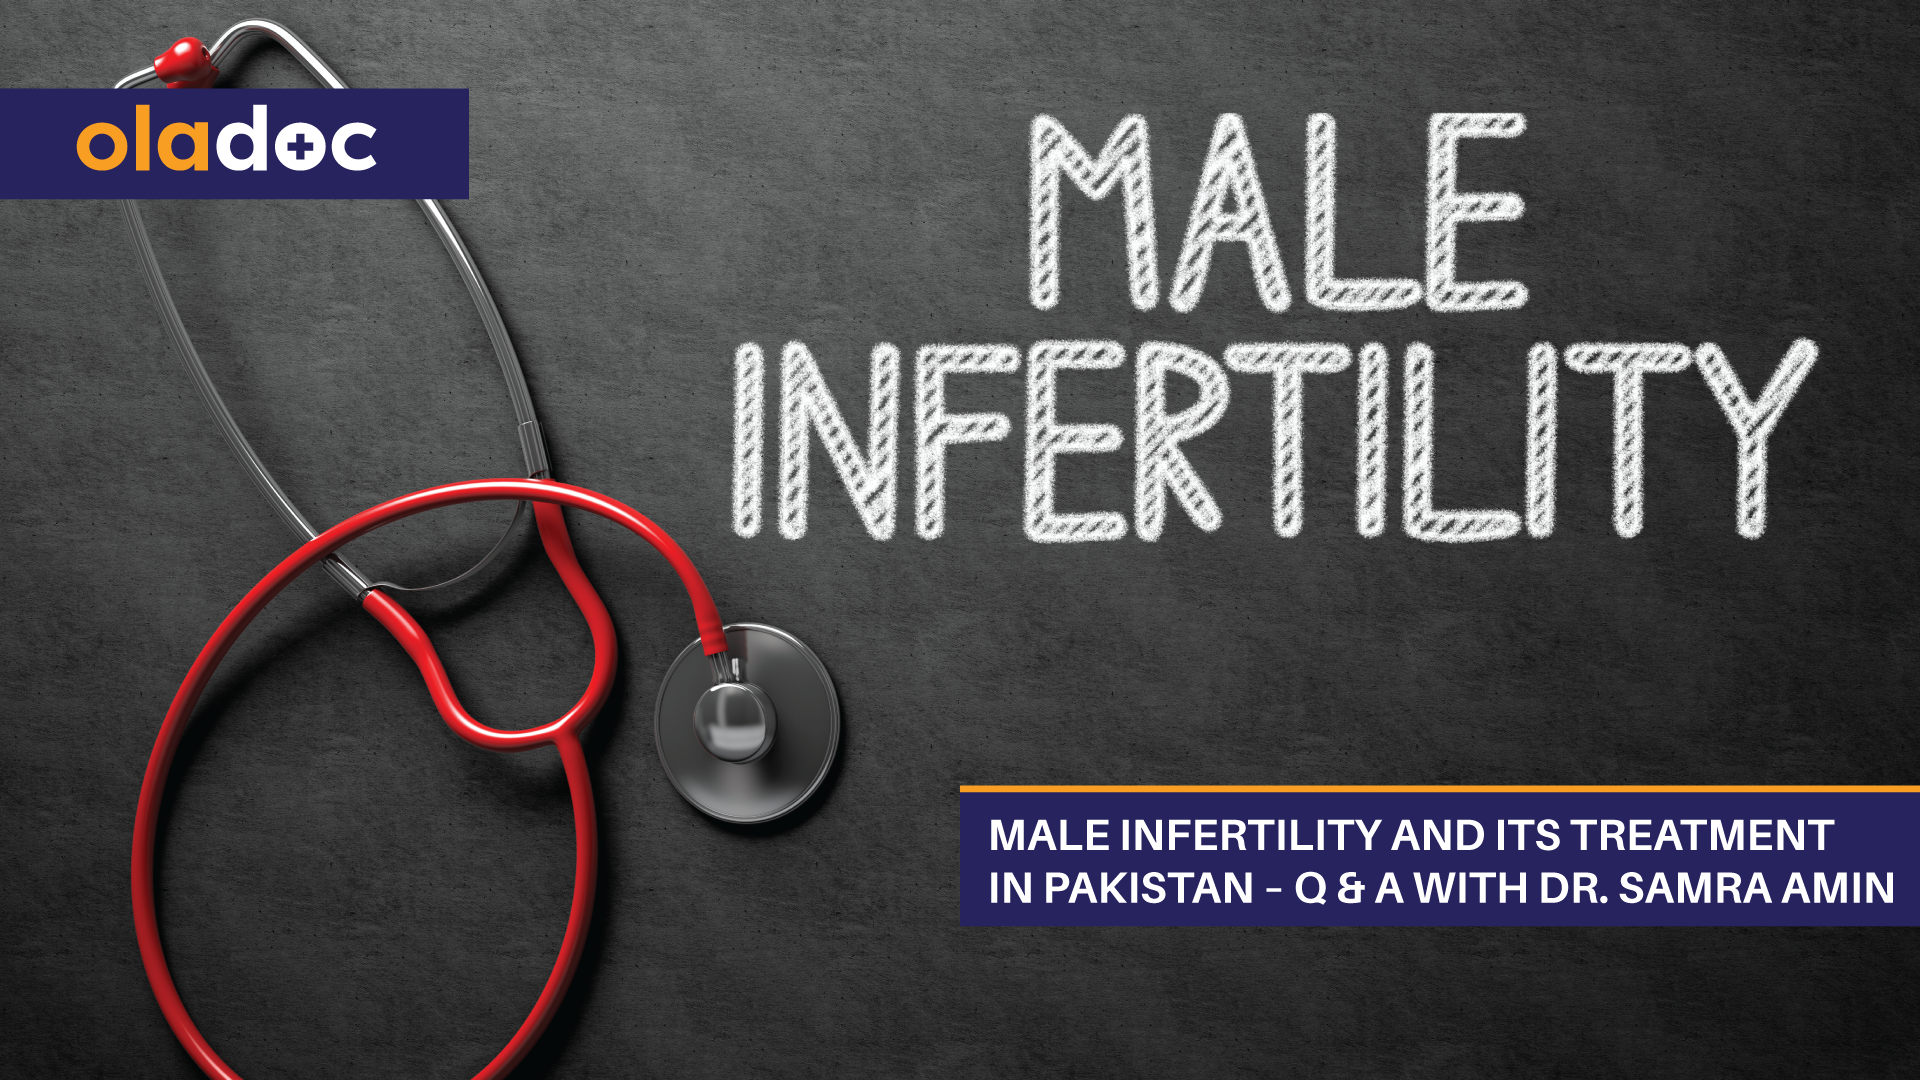 male-infertility-pakistan